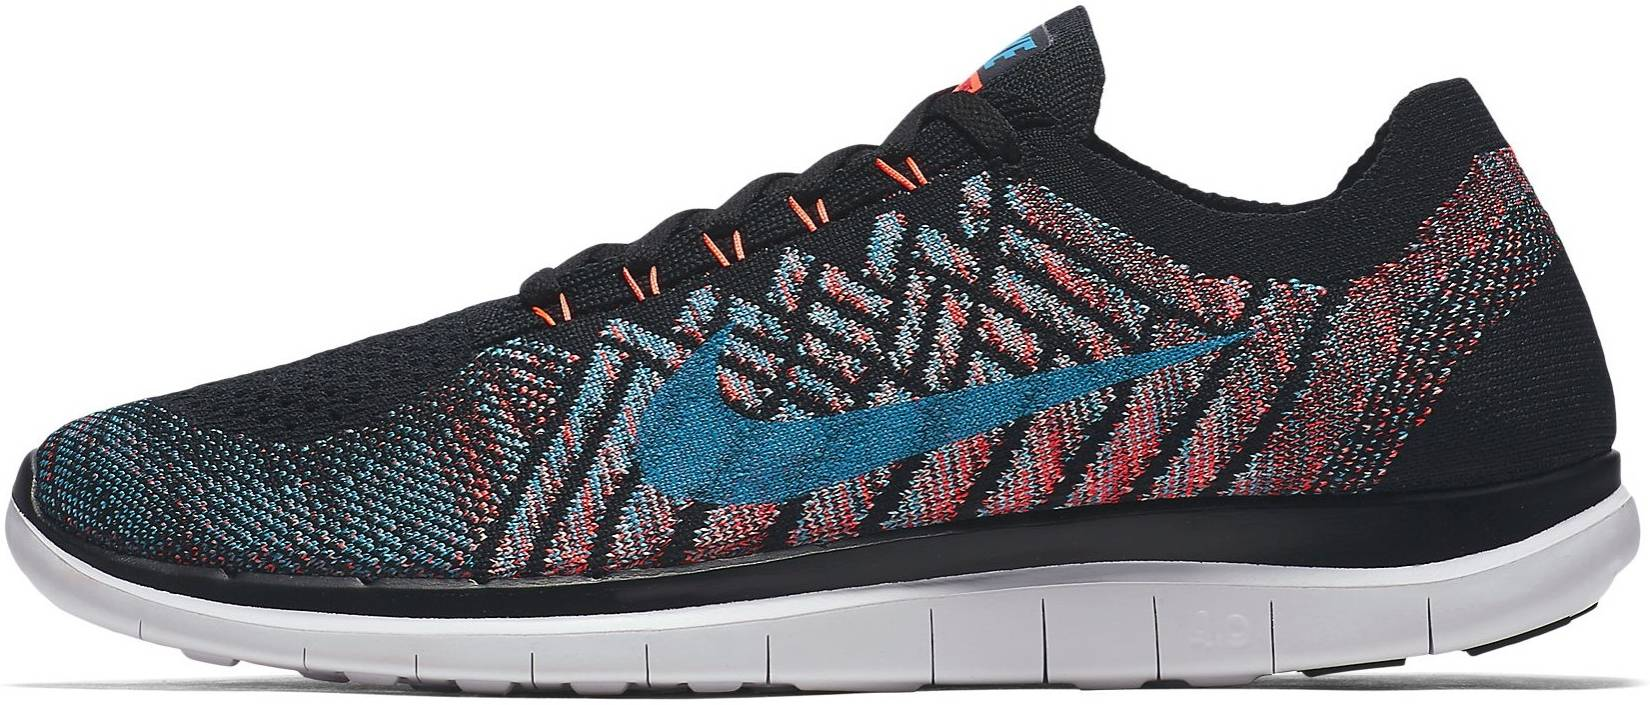 tonto Pakistán riqueza  Nike Free Flyknit 4.0 - Deals ($110), Facts, Reviews (2021) | RunRepeat